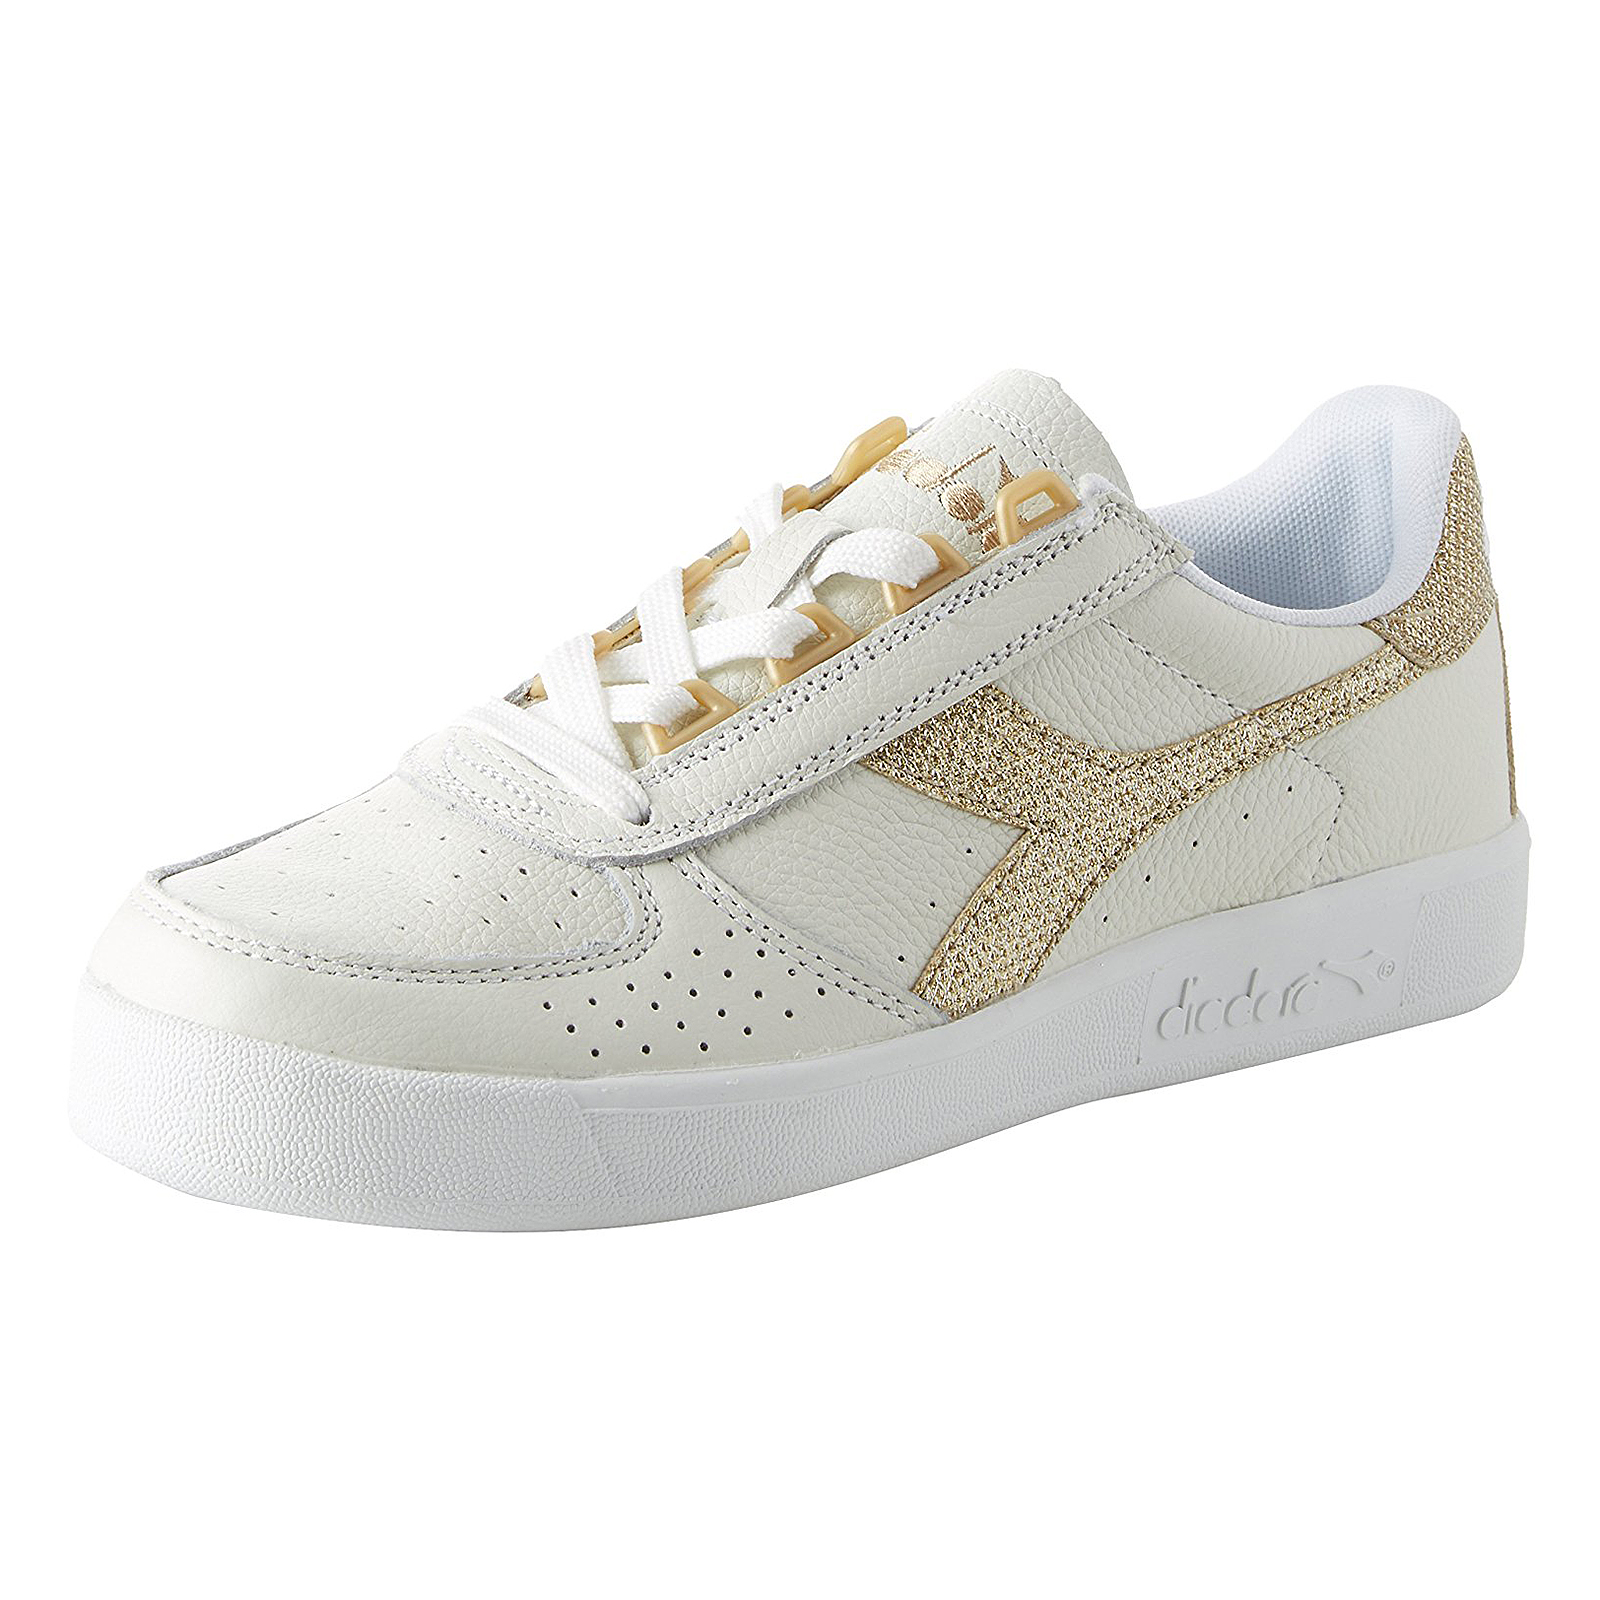 3d0cc83a Details about Diadora Sneakers B.Elite L Wn White/Gold White